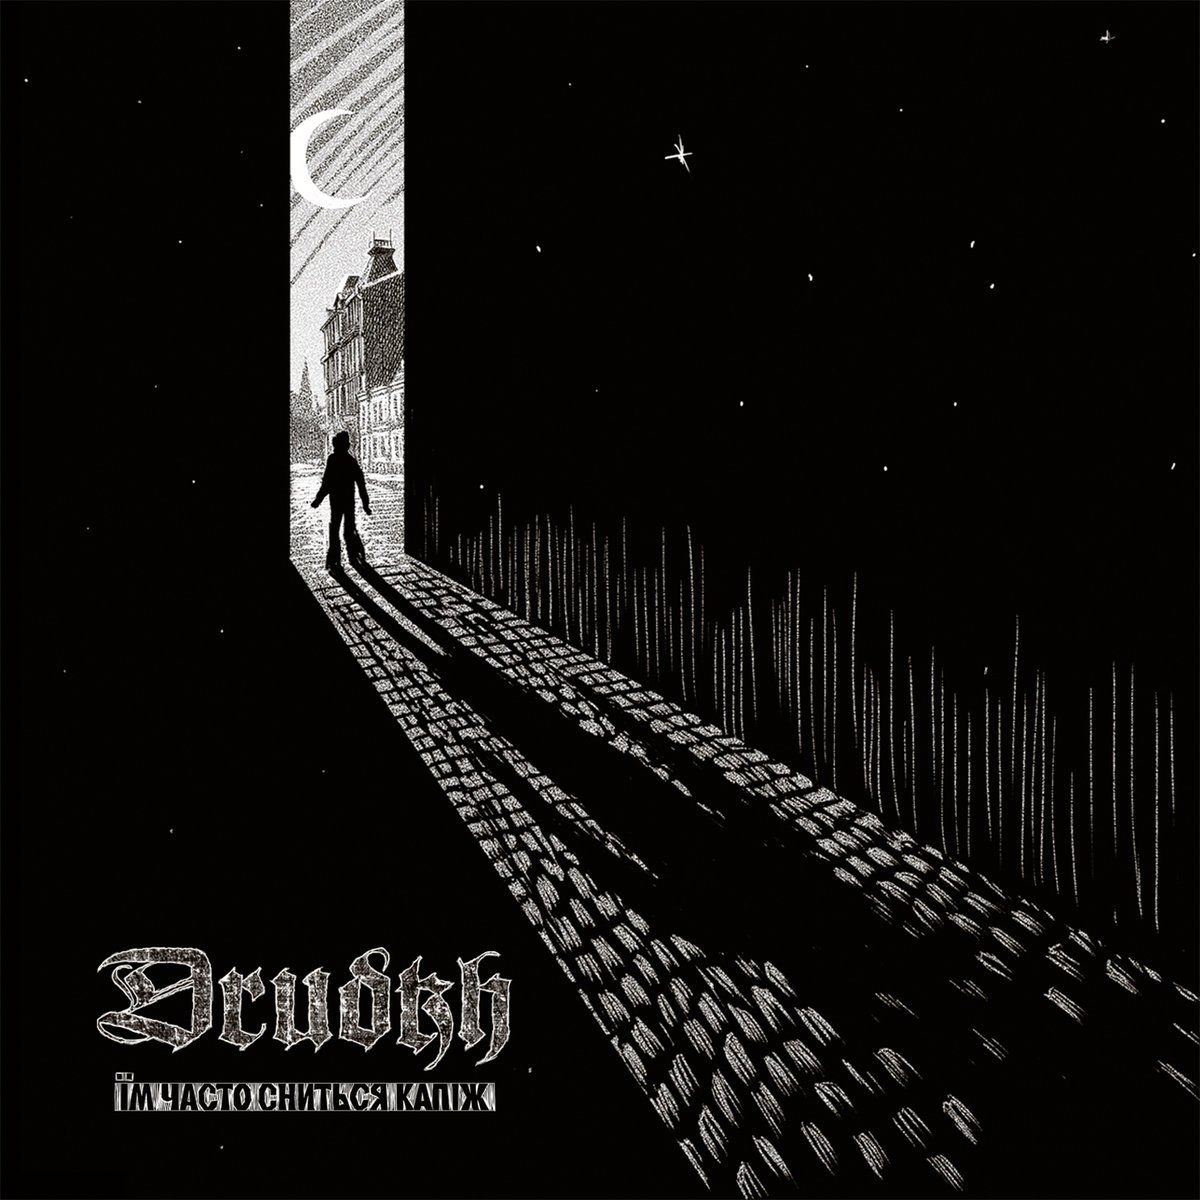 Reviews for Drudkh - Їм часто сниться капіж (They Often See Dreams About the Spring)